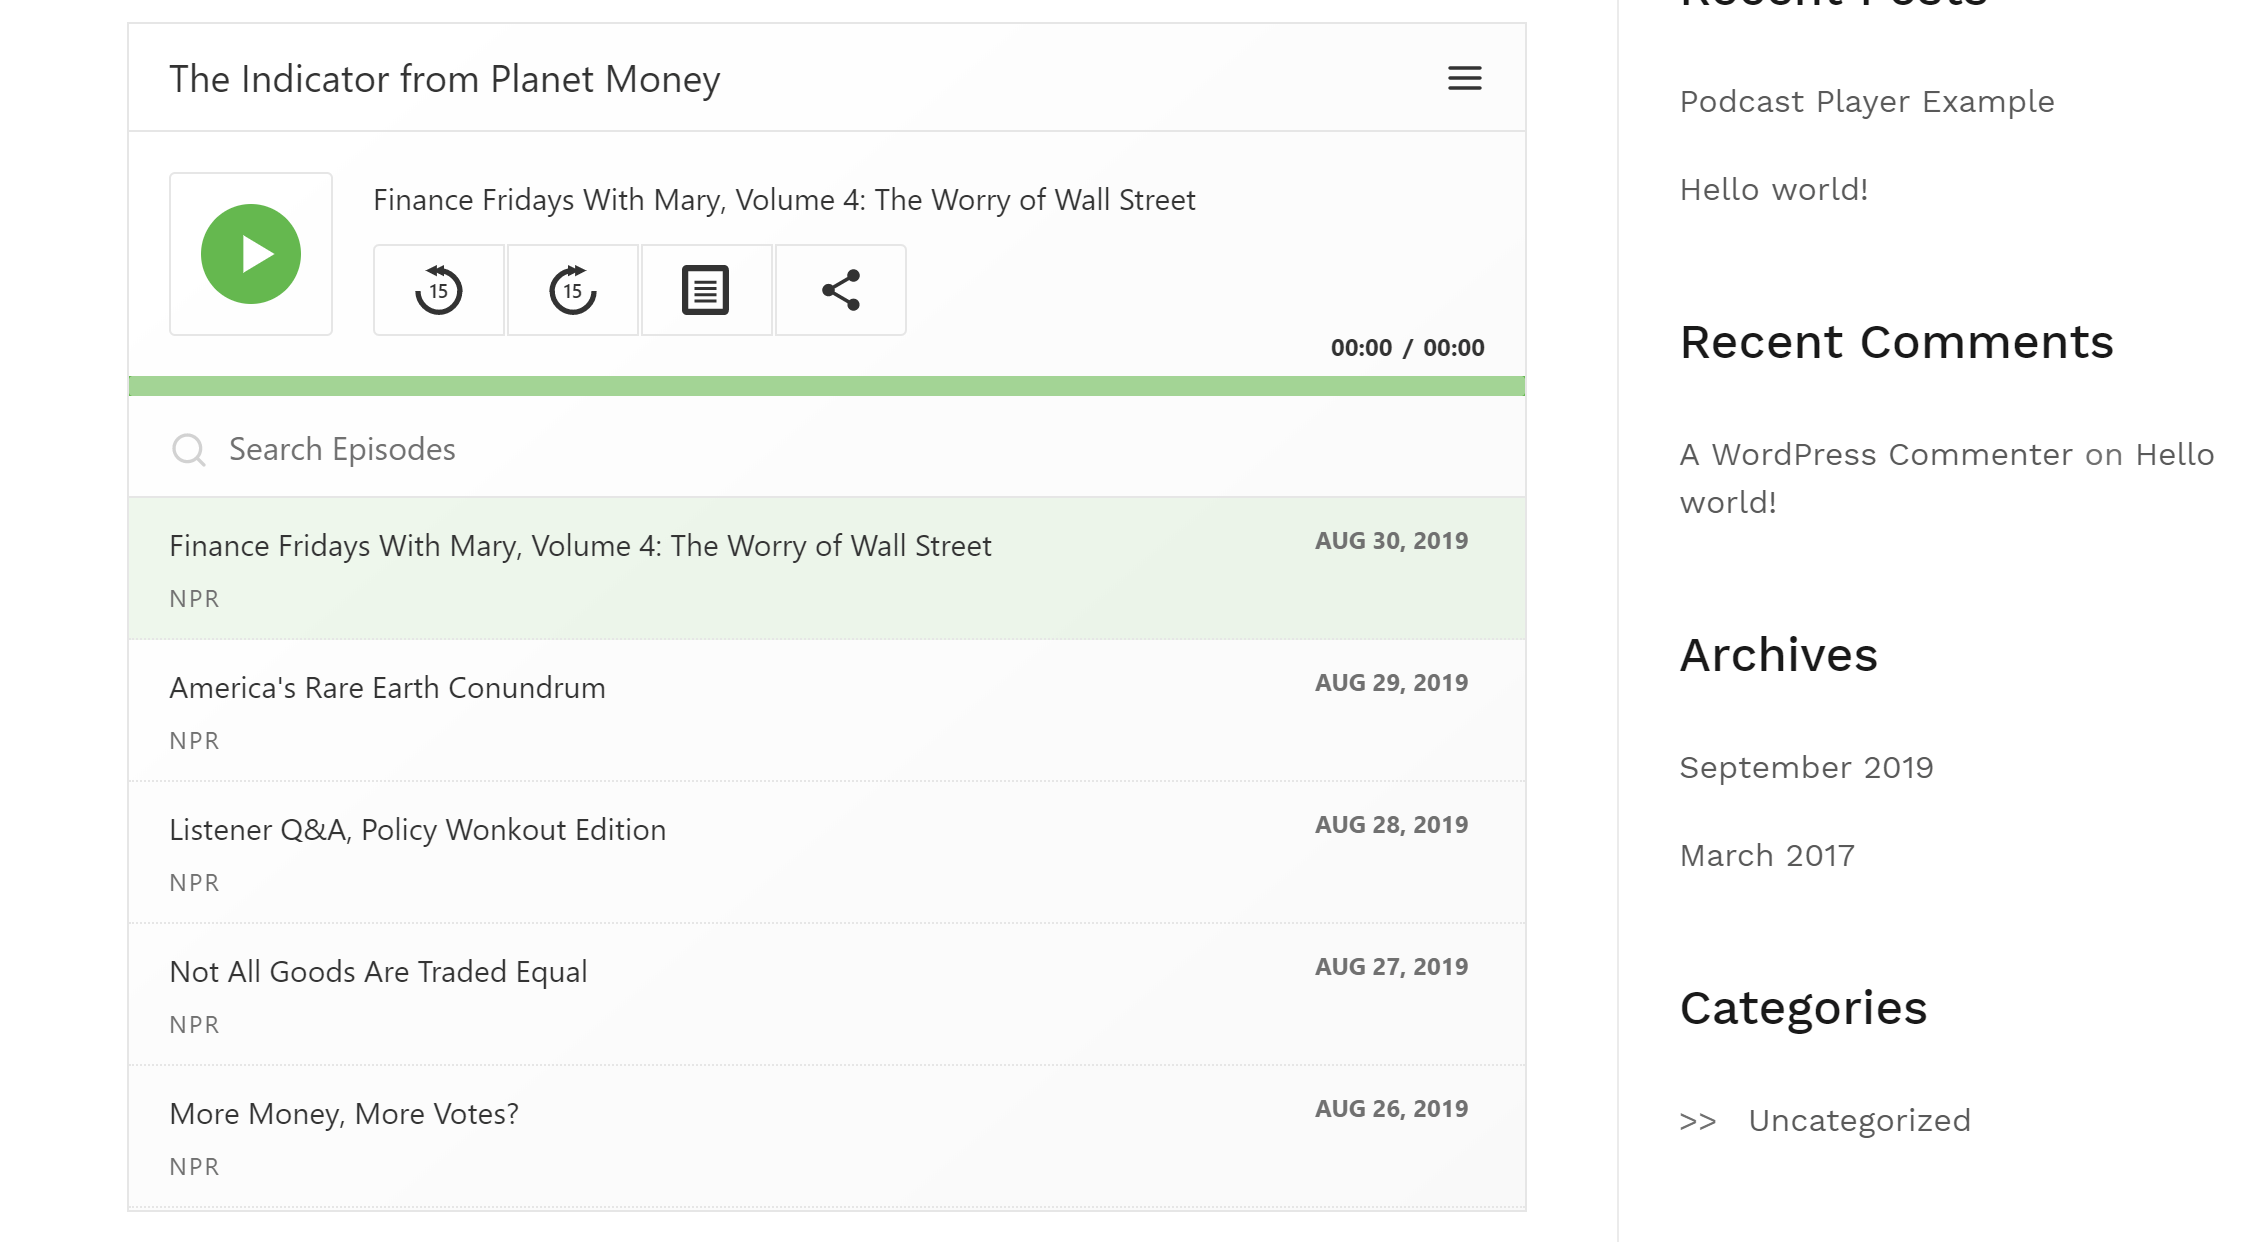 Podcast player example